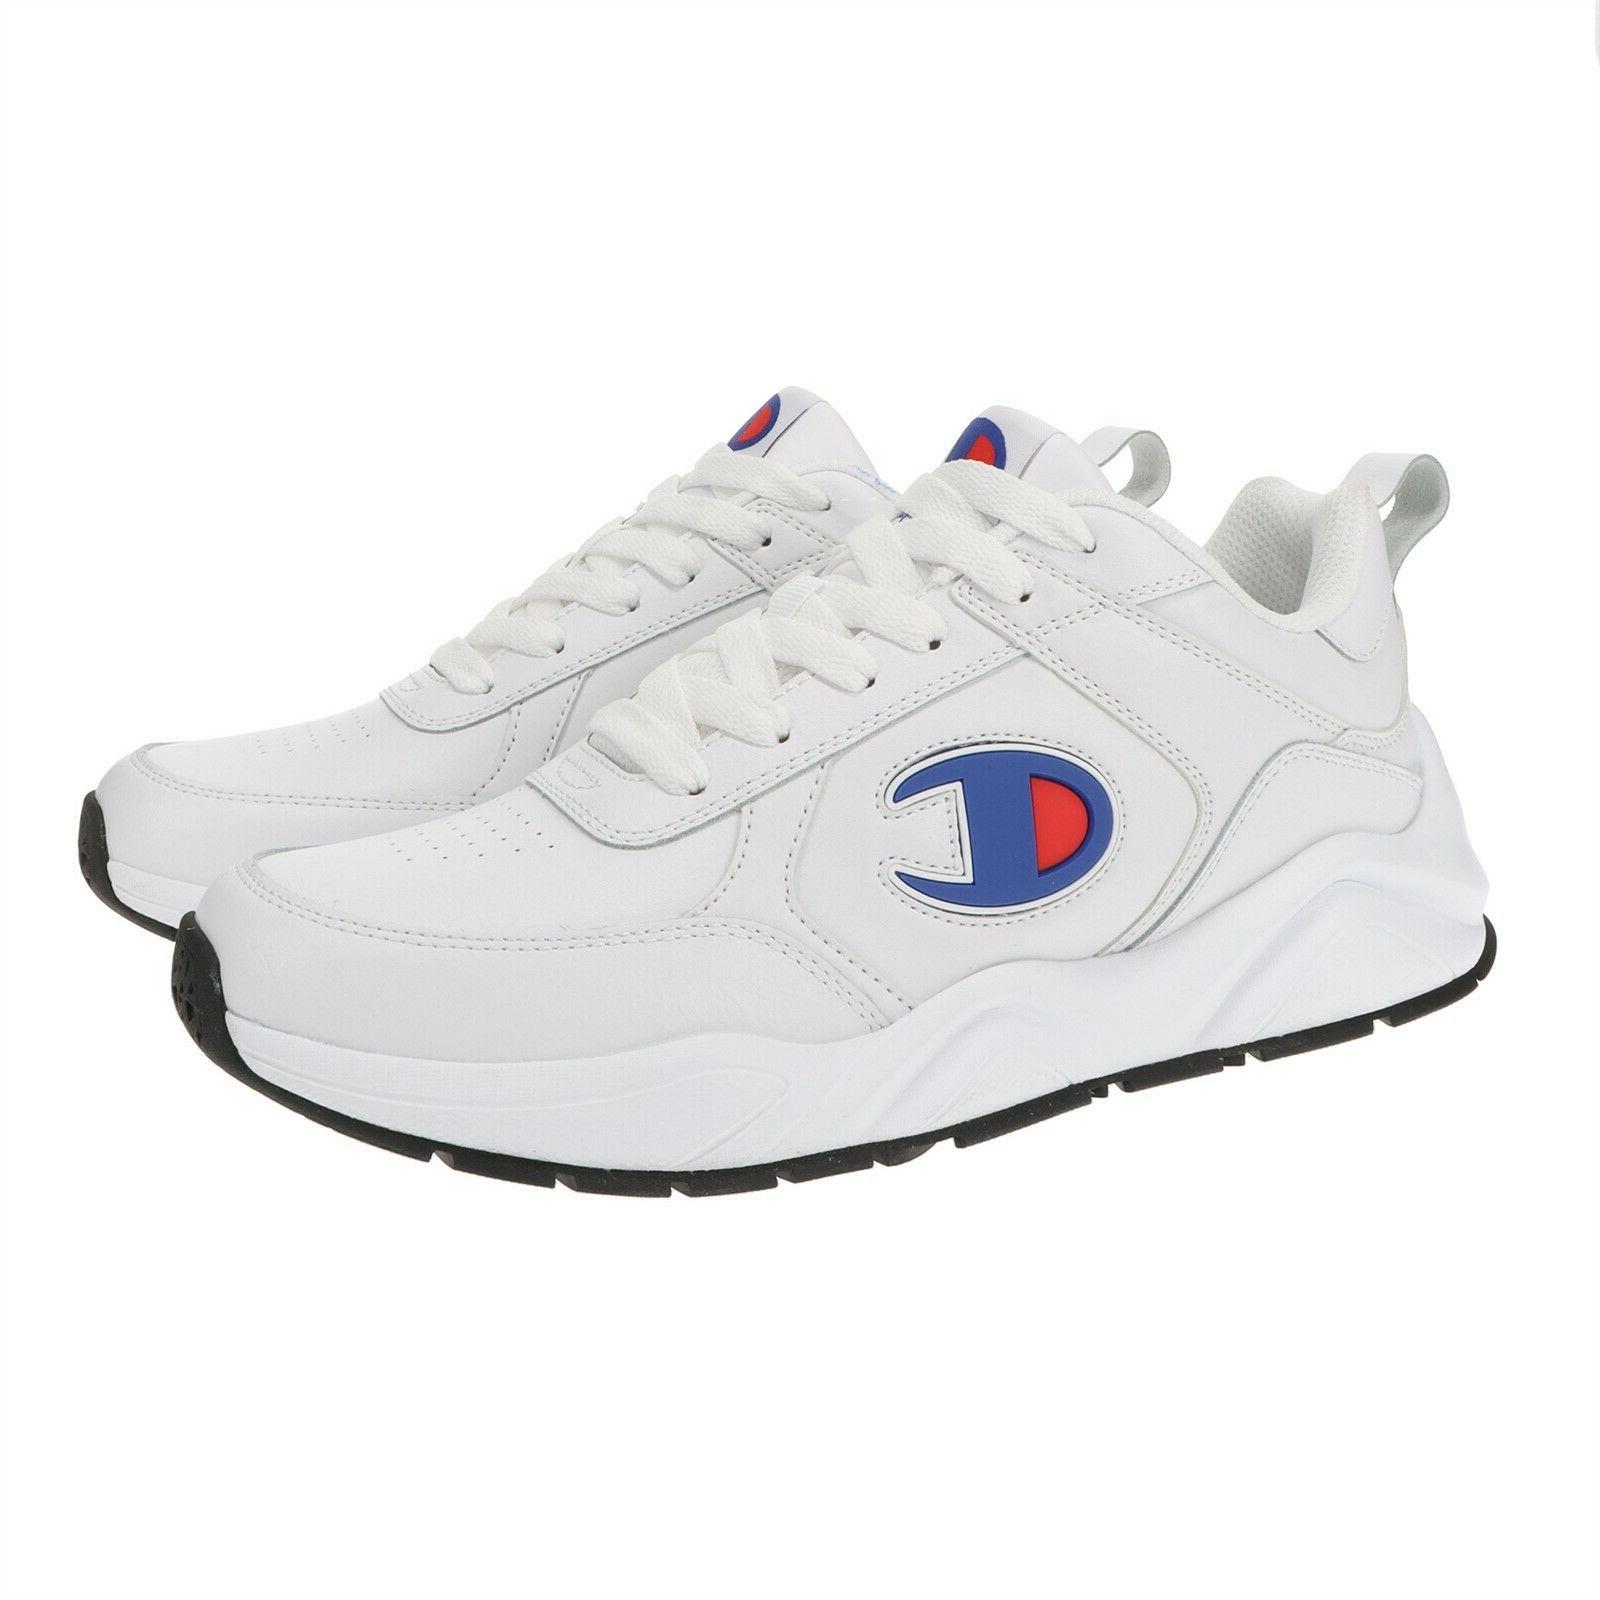 Champion Classic Shoes Running Size 10